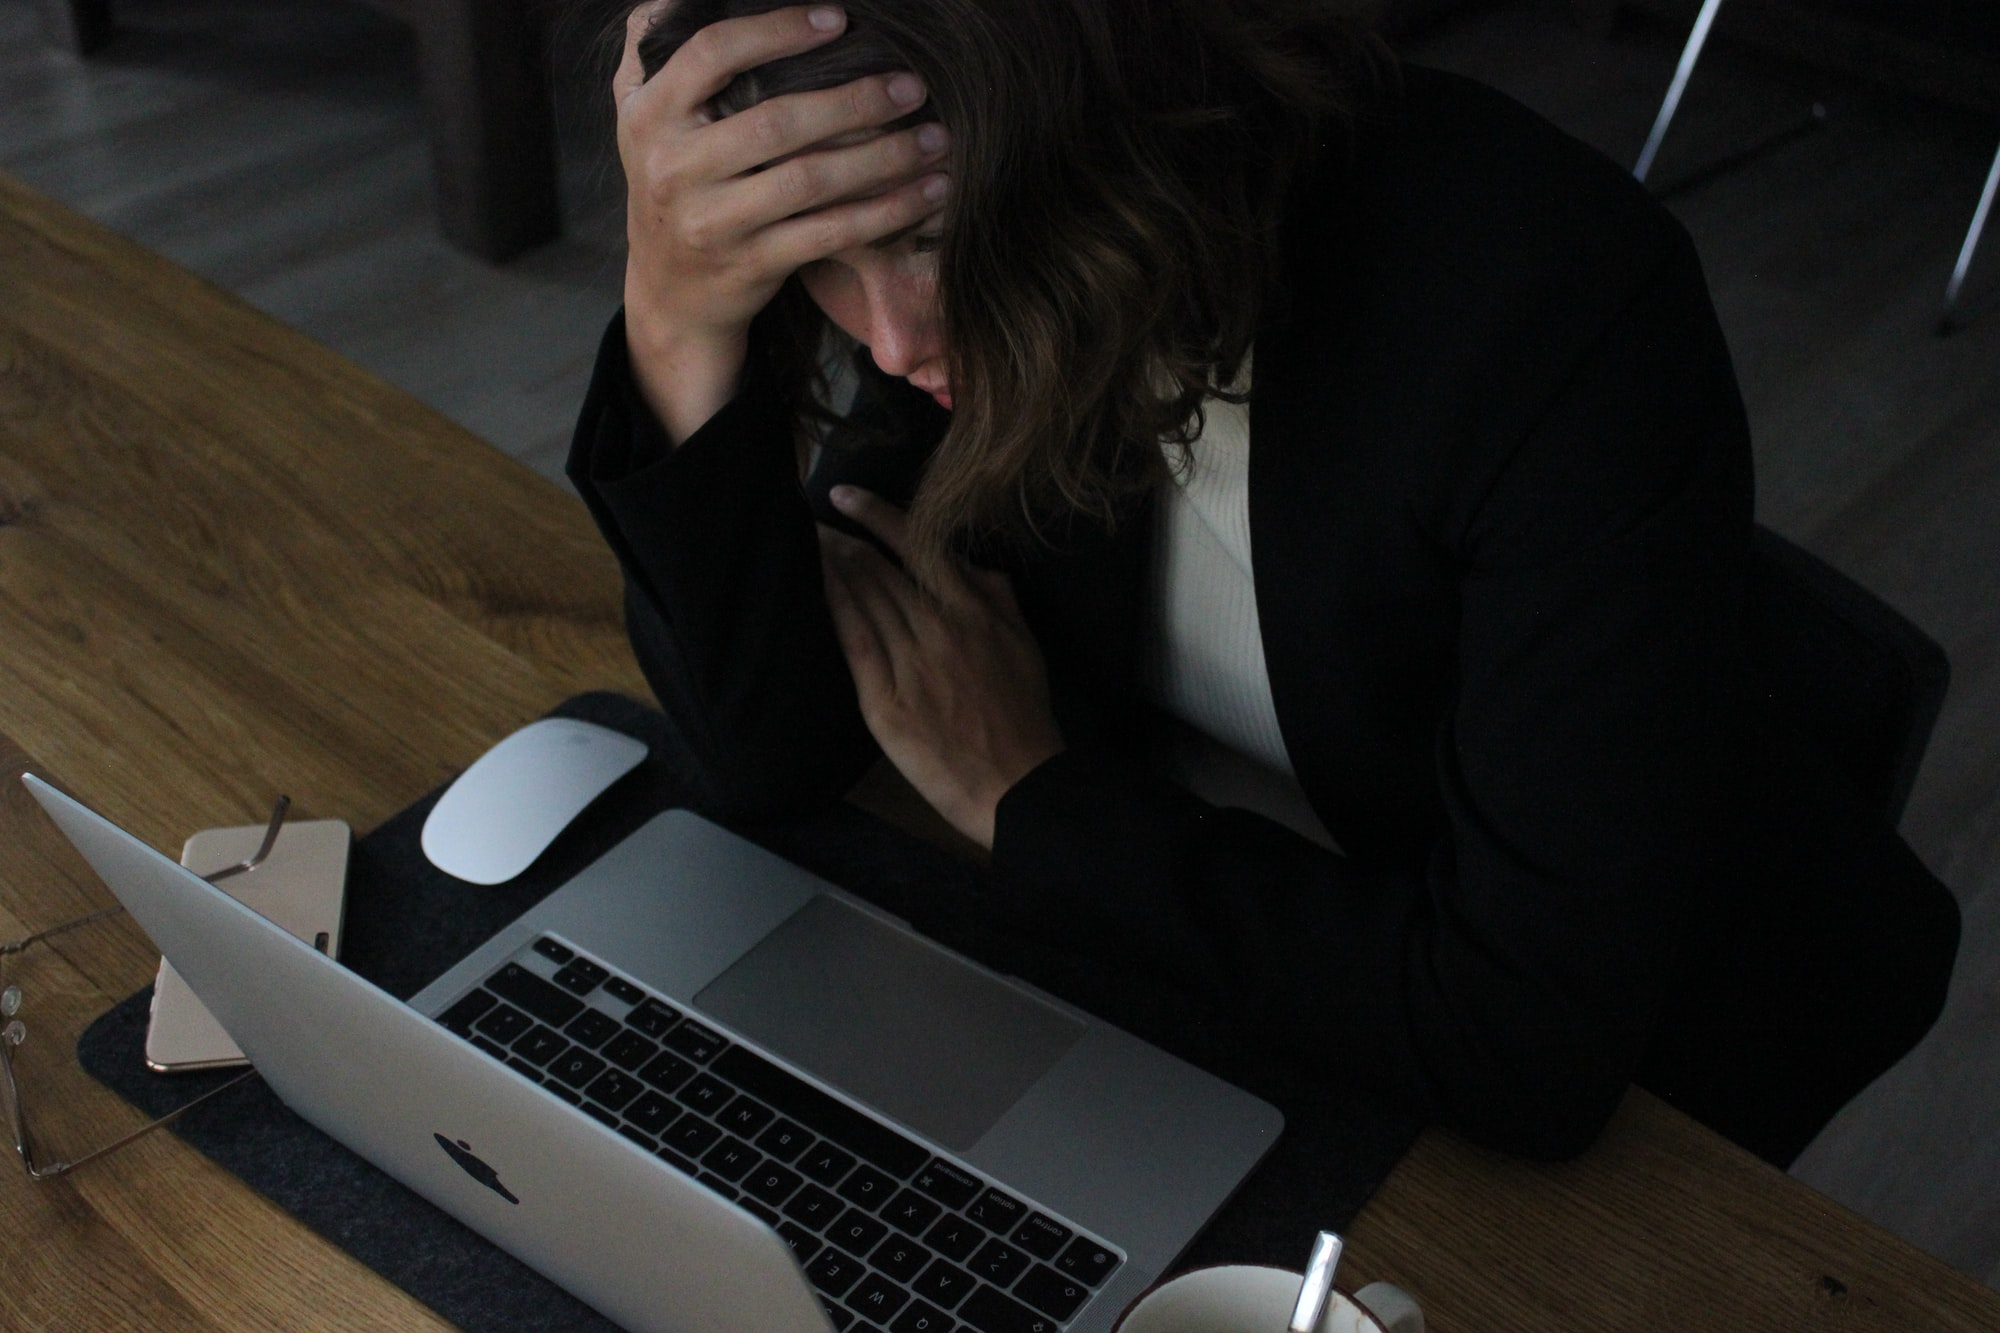 a business woman who is frustrated because she is working too much